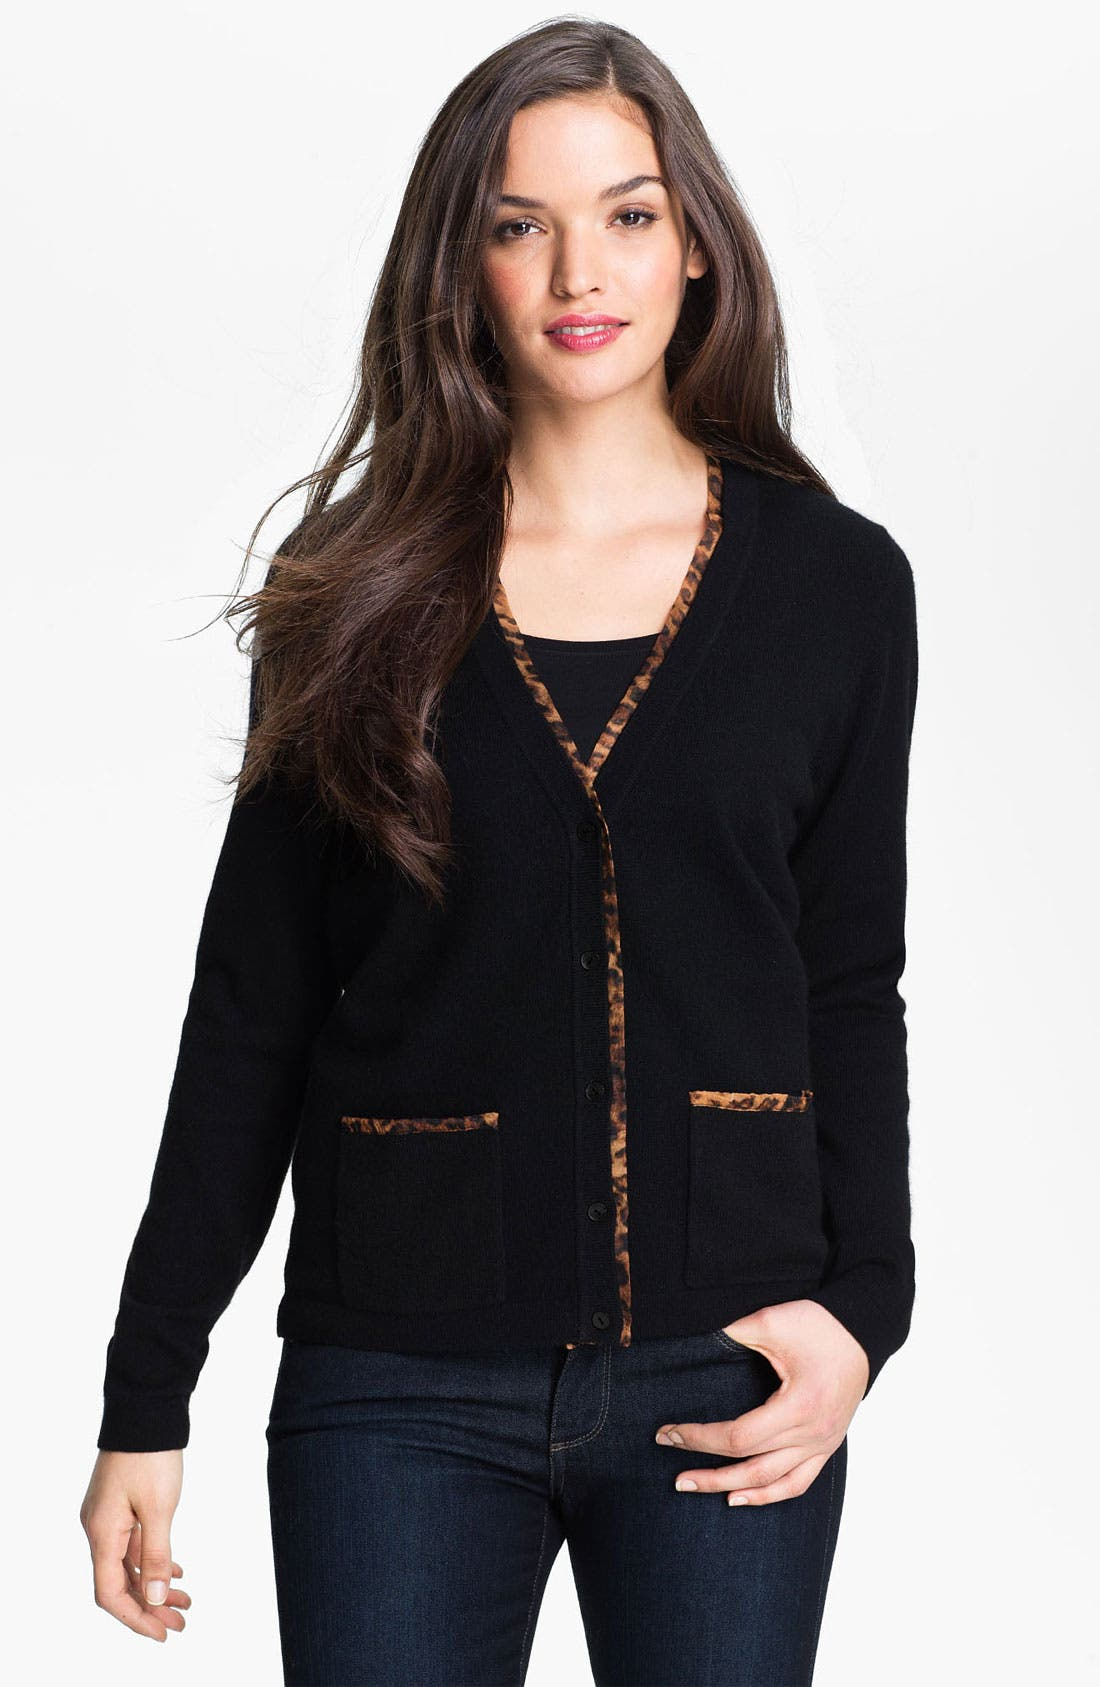 Main Image - Saffron Animal Print Trim Cashmere Cardigan